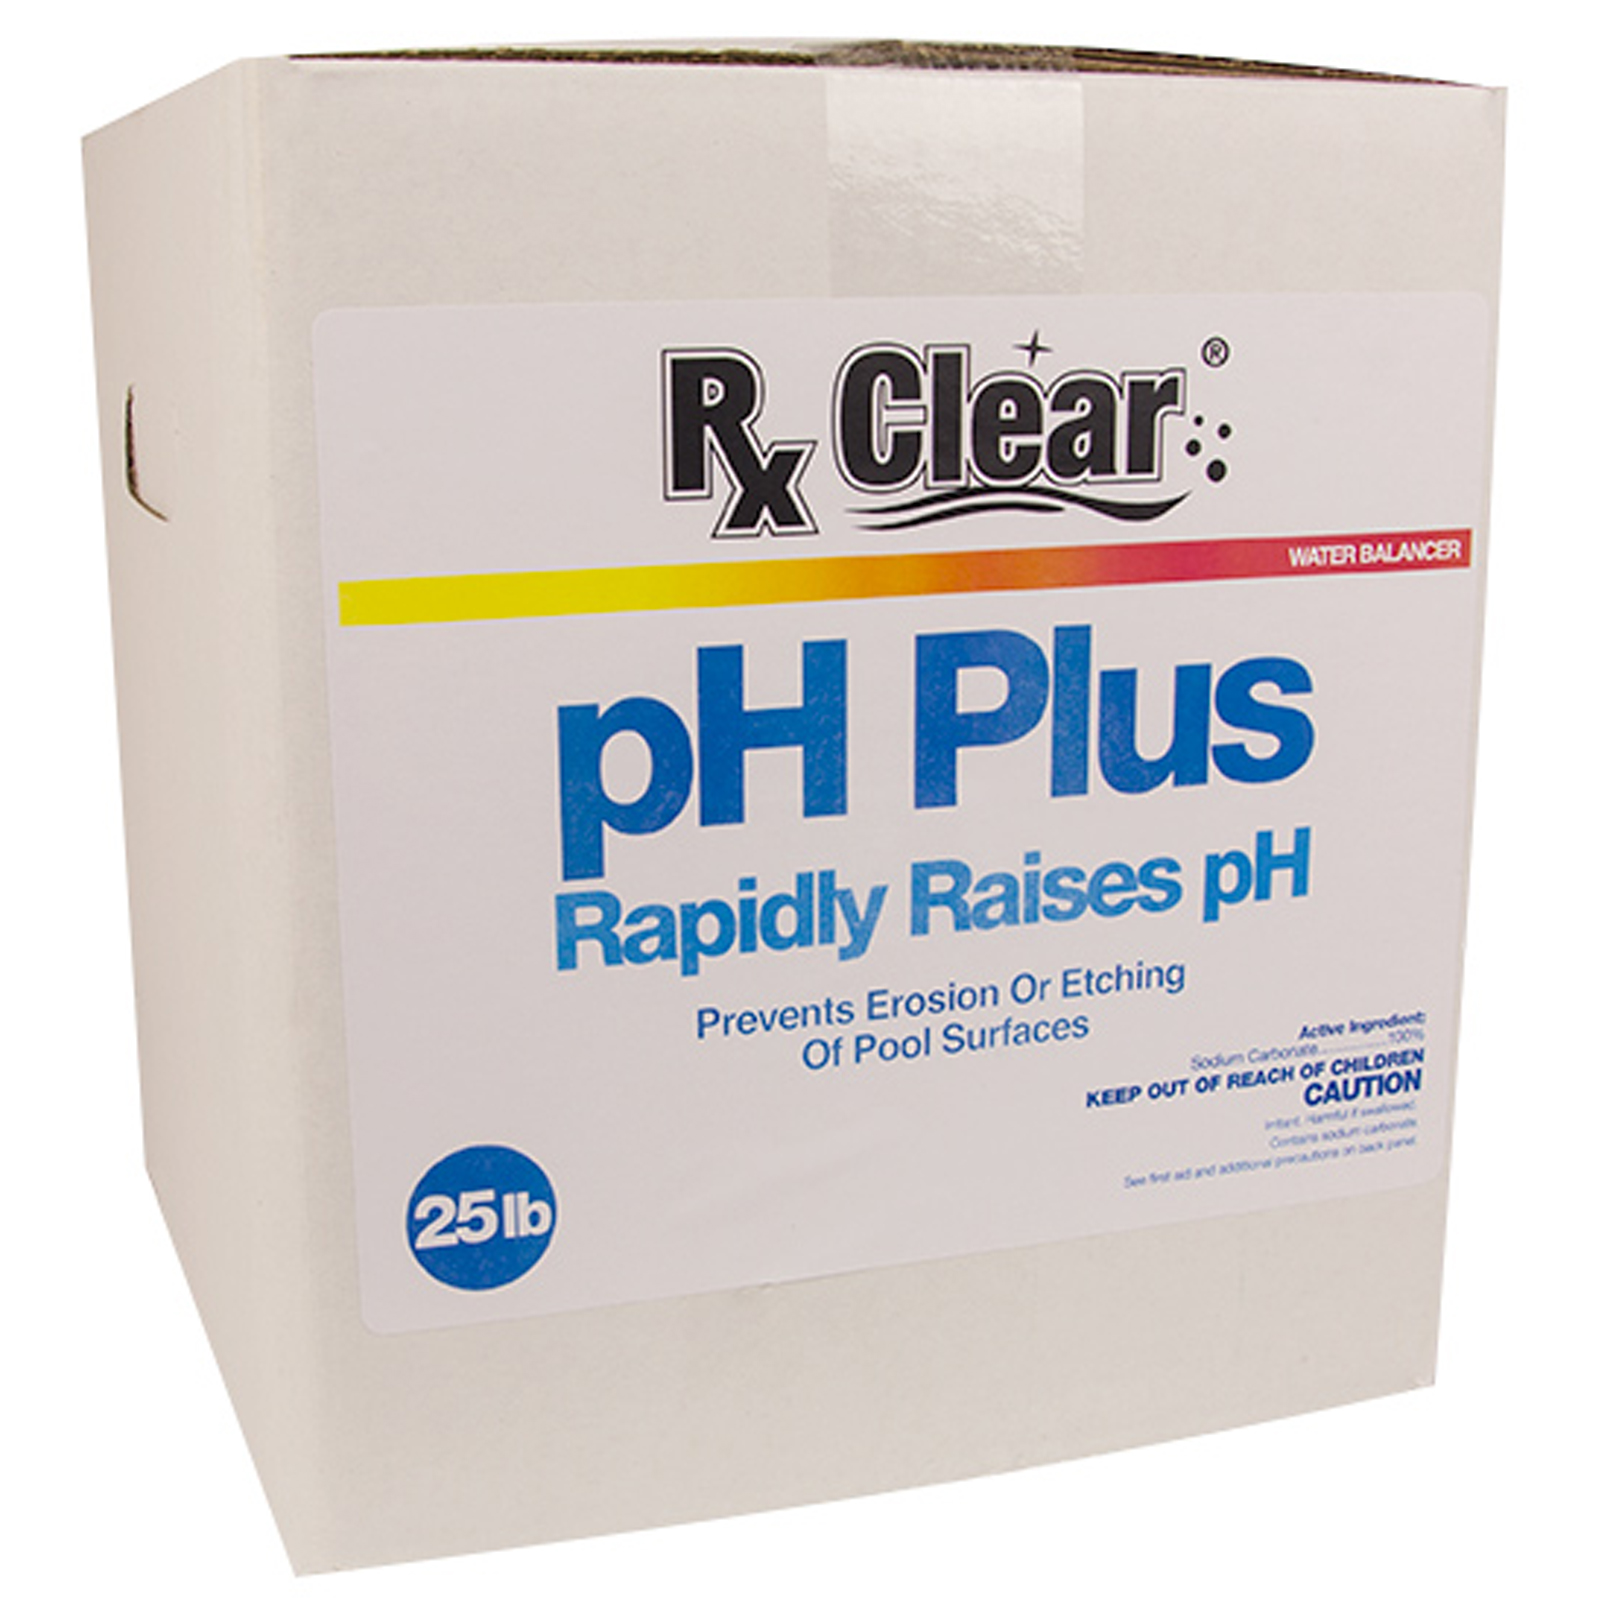 Rx Clear Ph Plus Increaser Granular Soda Ash Chemical For Swimming Pool 25 Lbs Ebay